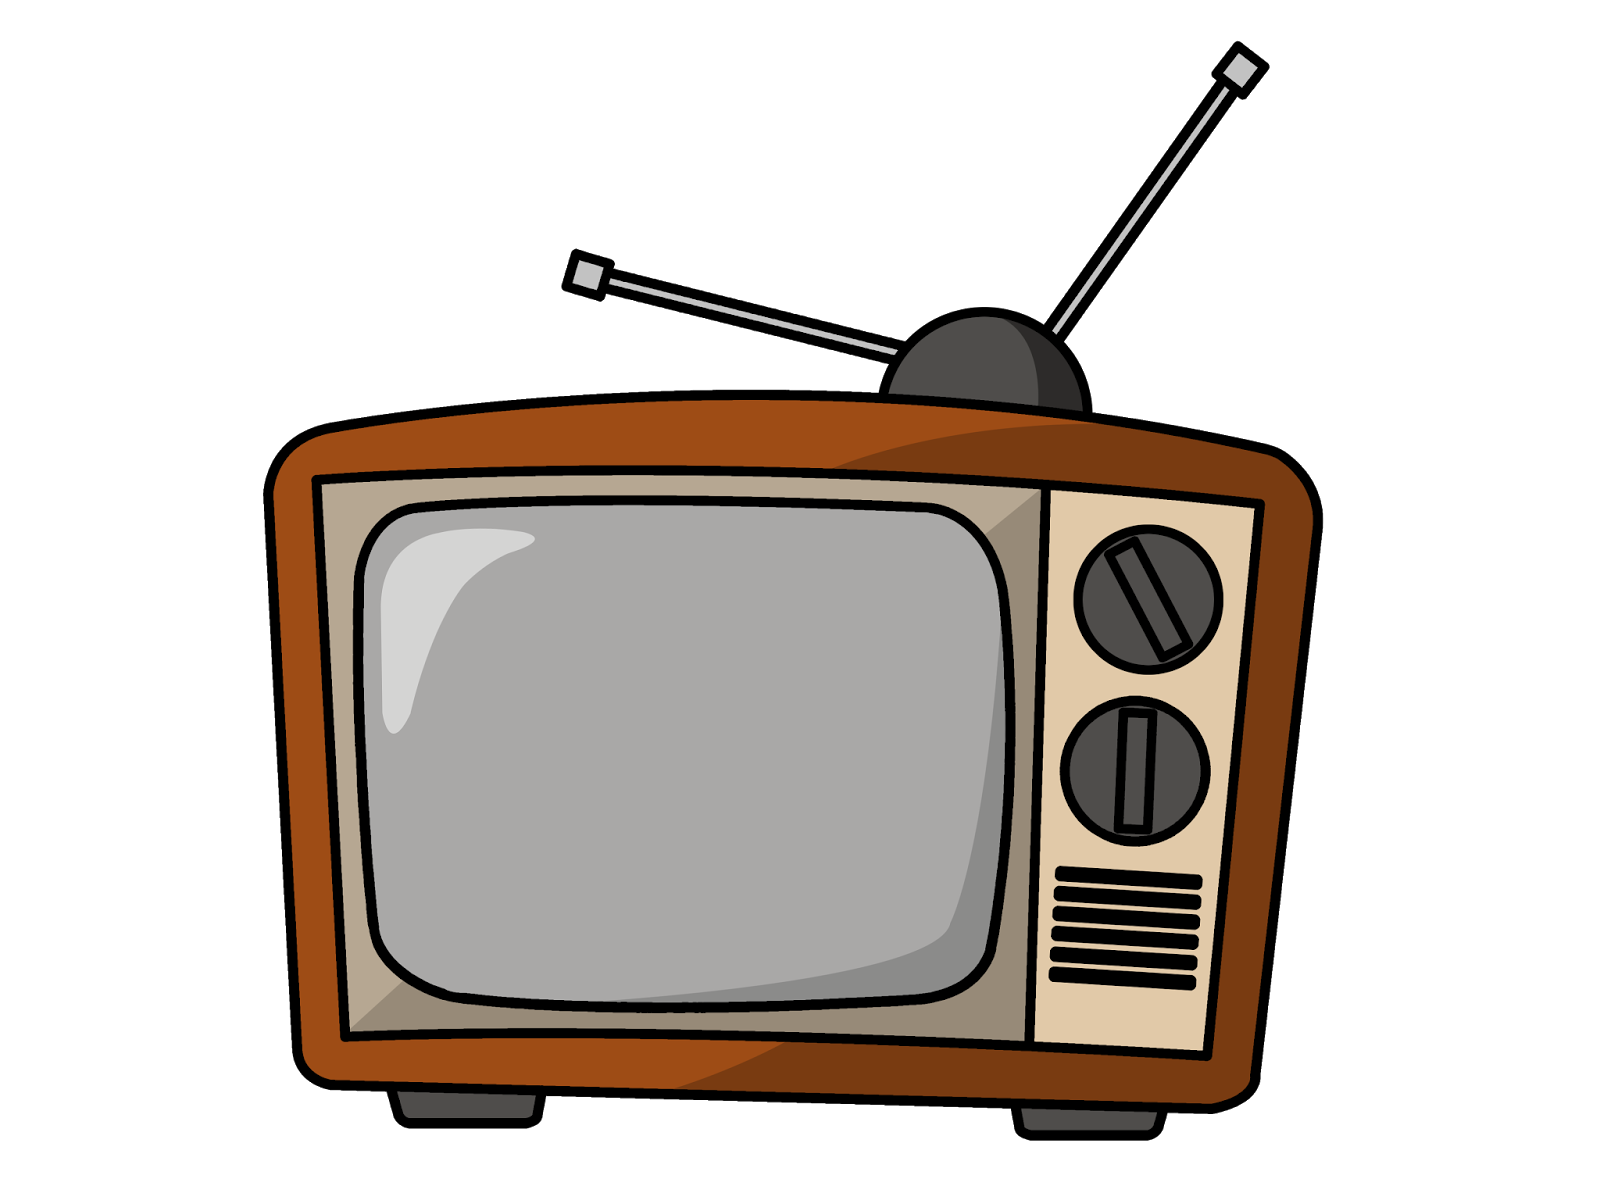 banner royalty free library Tv clipart. Television show free on.